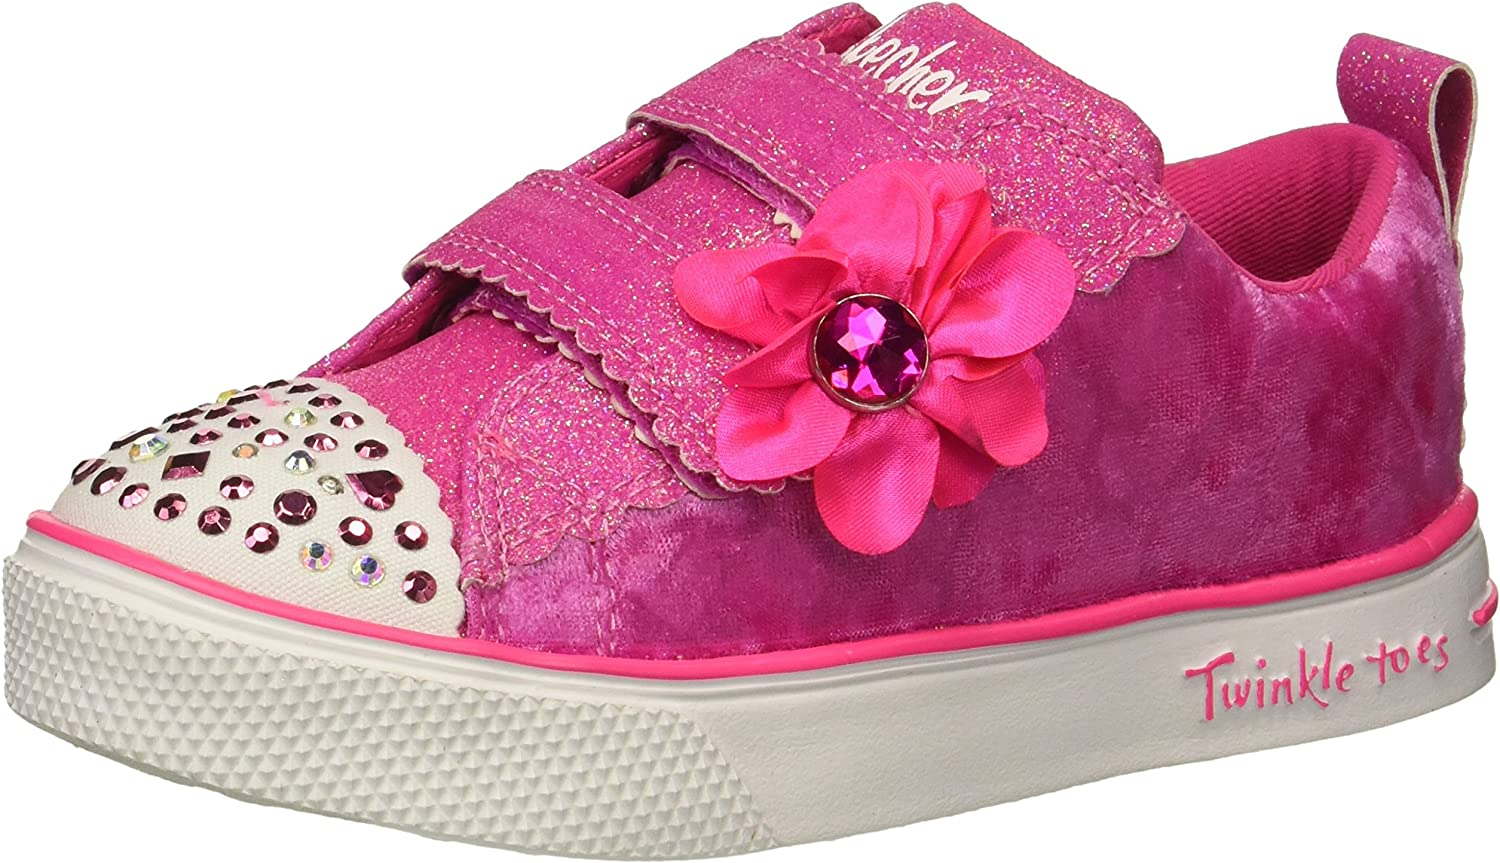 Skechers Kids Twinkle Breeze 2.0-Velvet Cut Sneaker